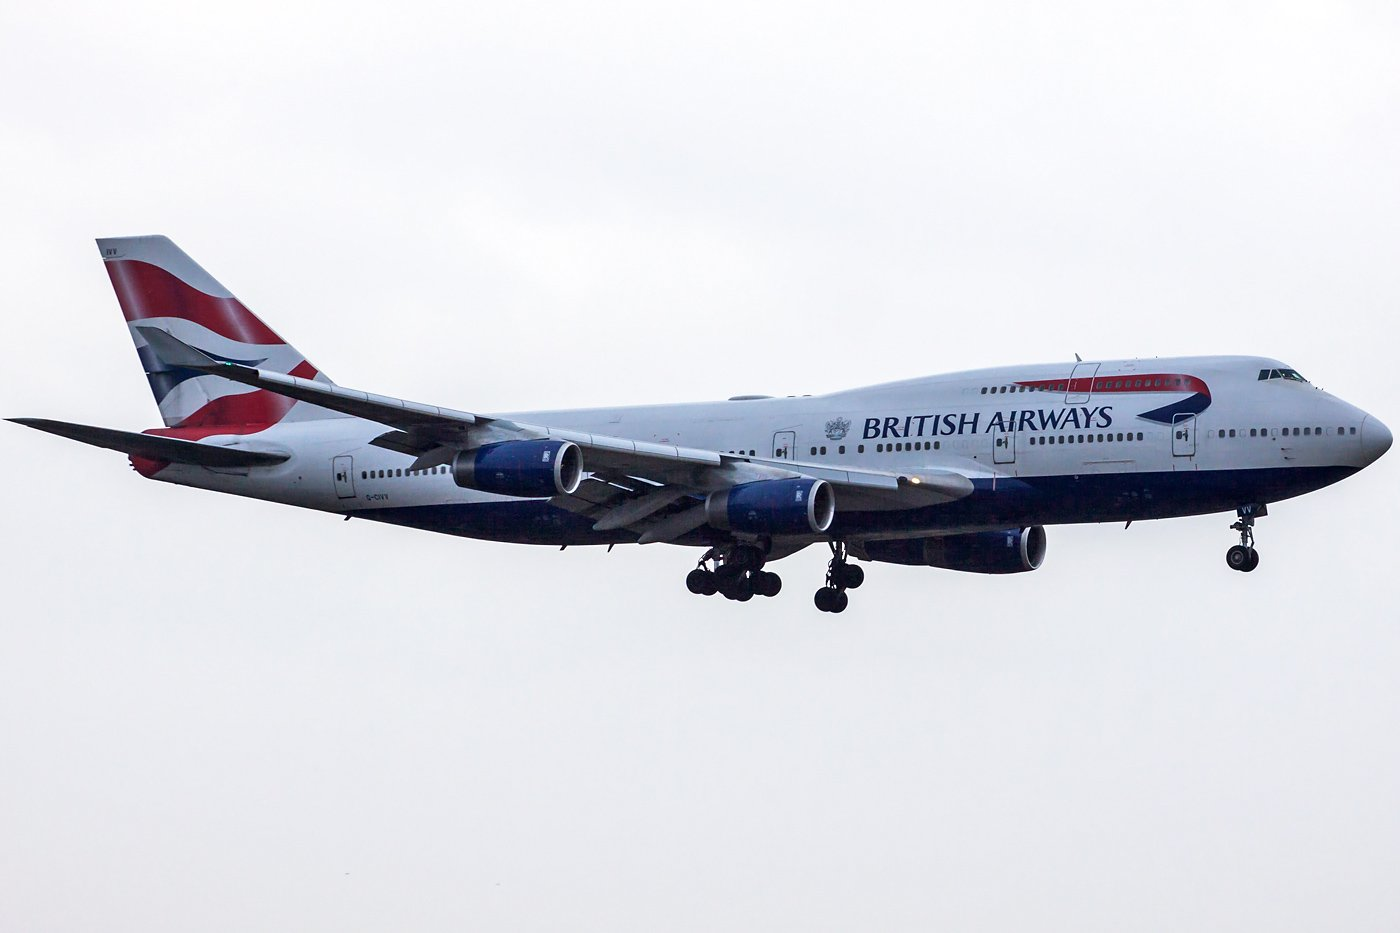 British Airways Boeing 747-436 G-CIVV